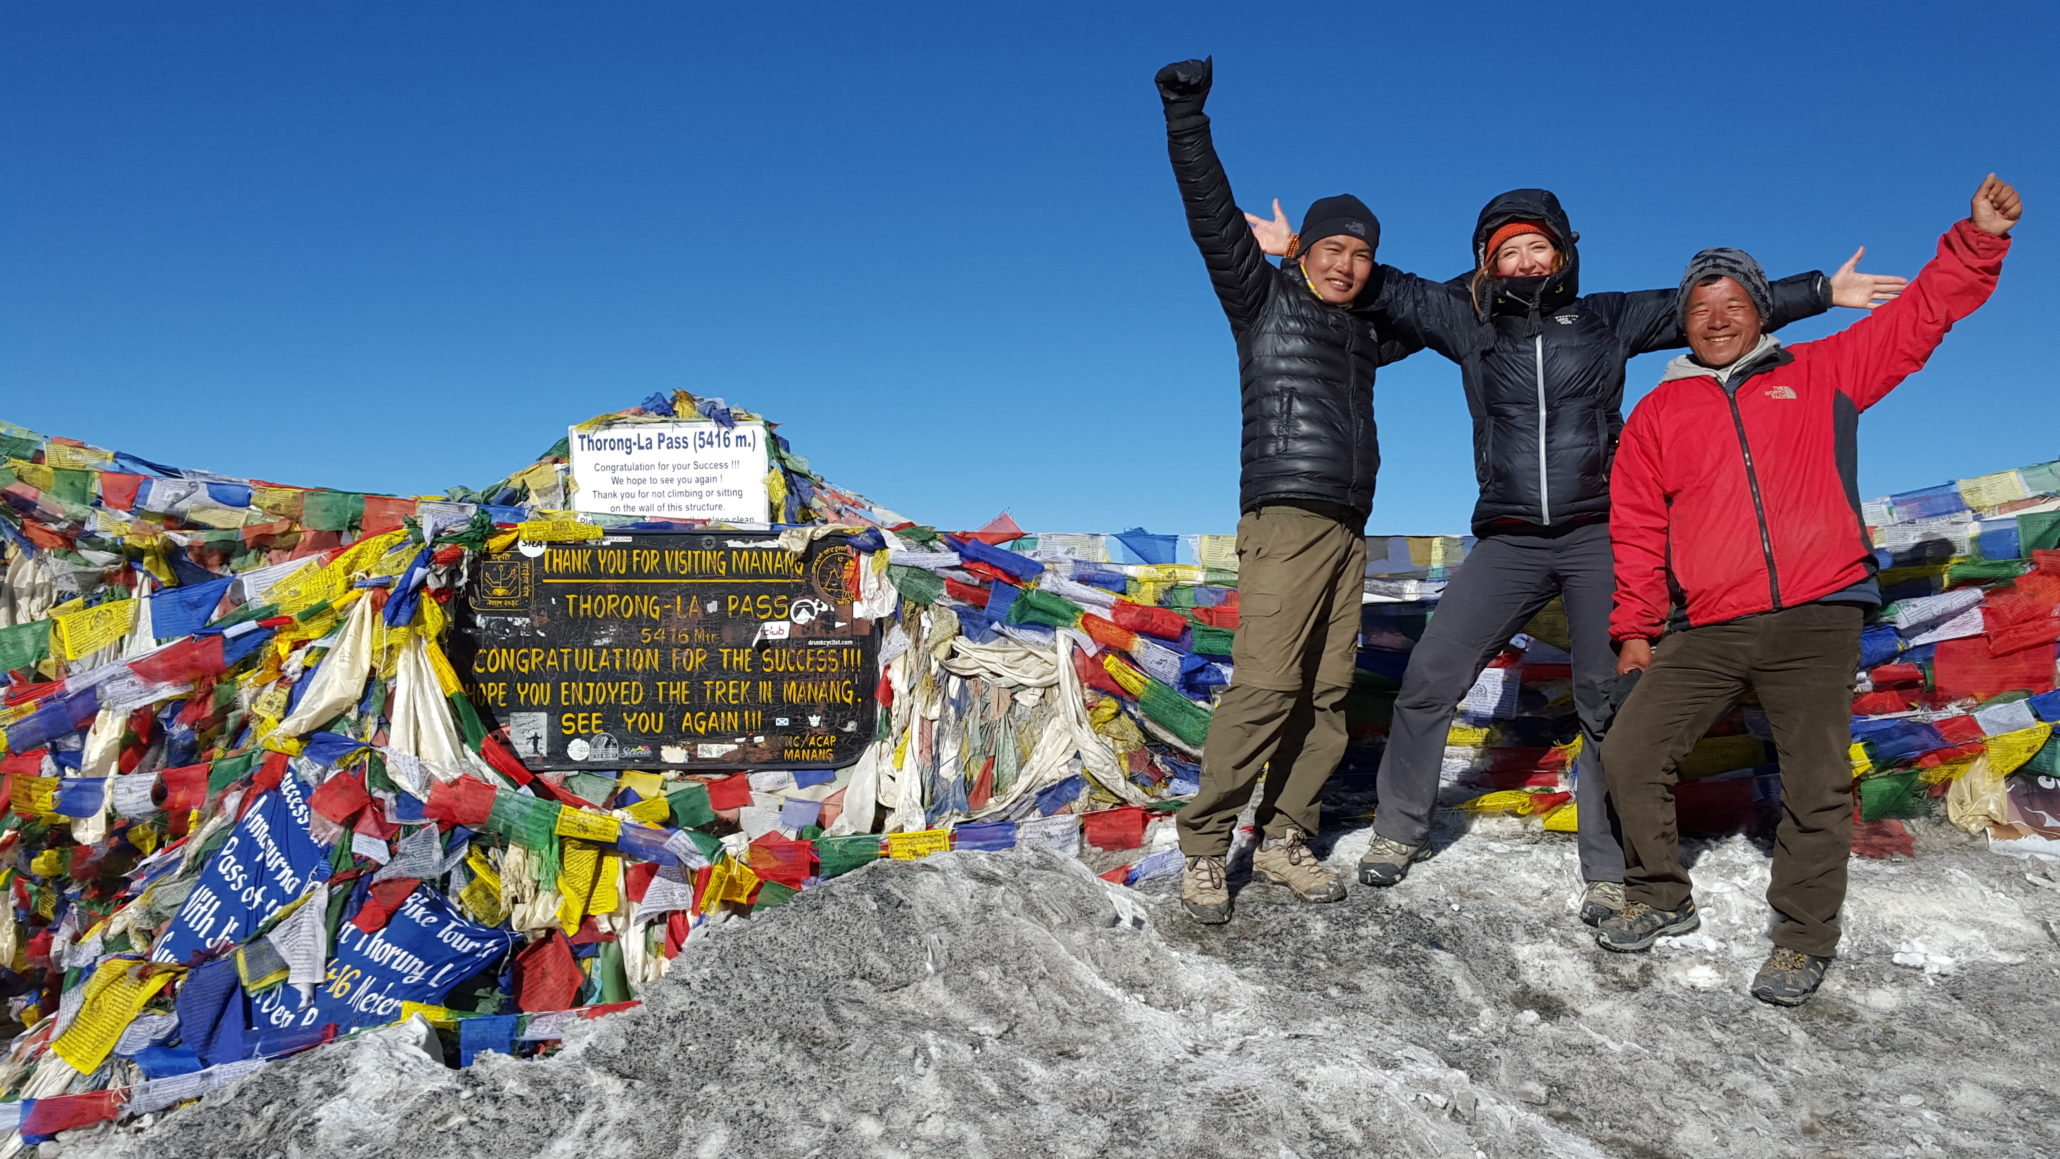 3 himalayan trekkers taking picture at the thorong-la pass